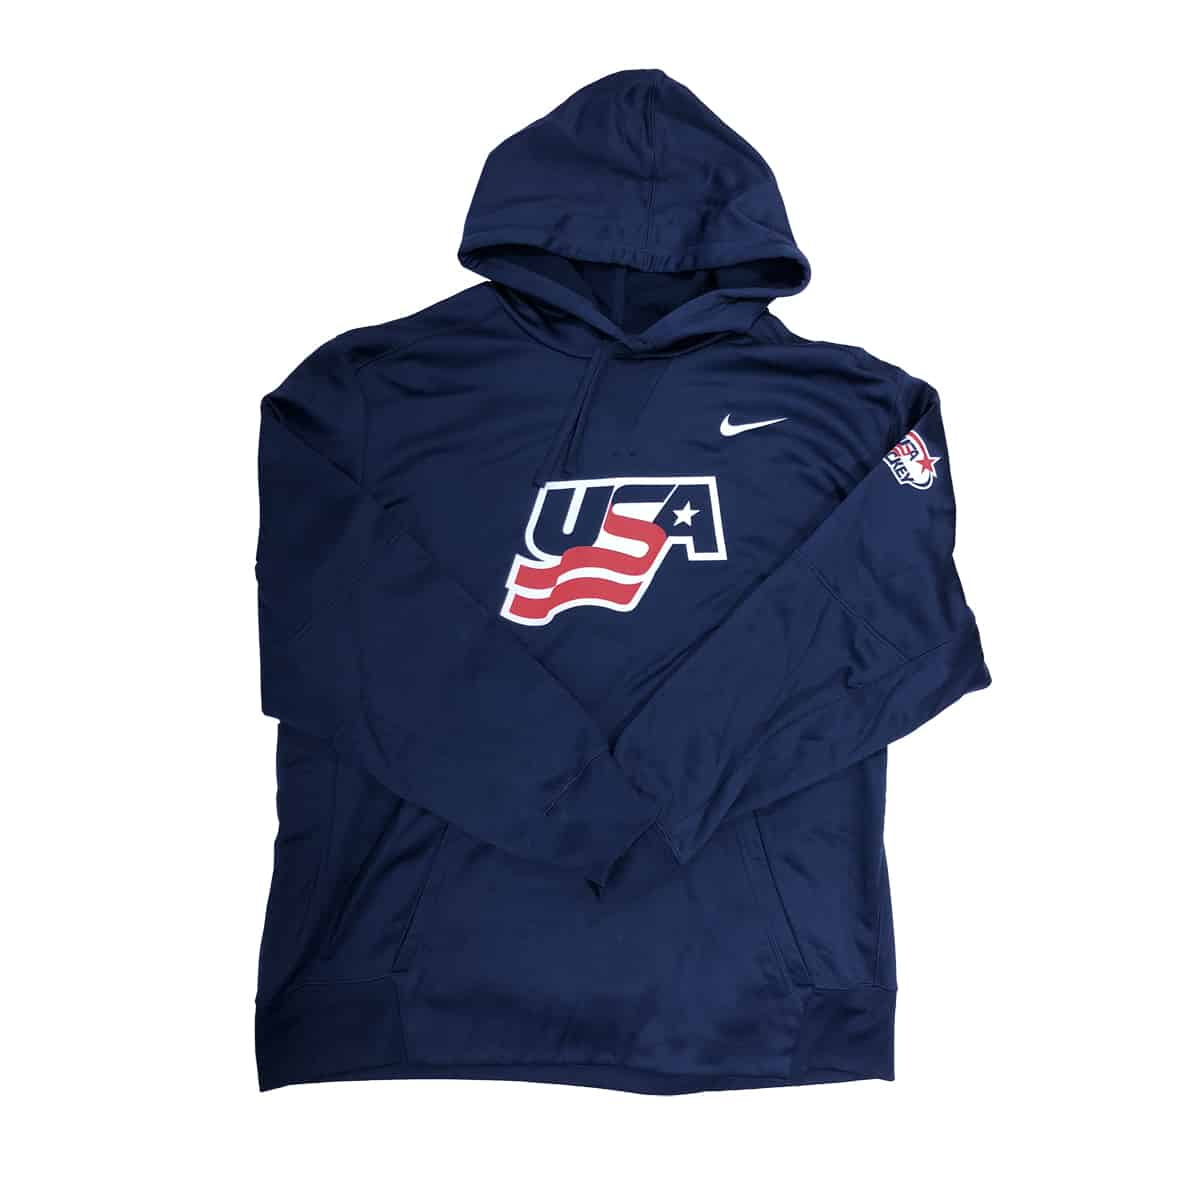 Nike USA Hockey Therma Hoodie in Navy